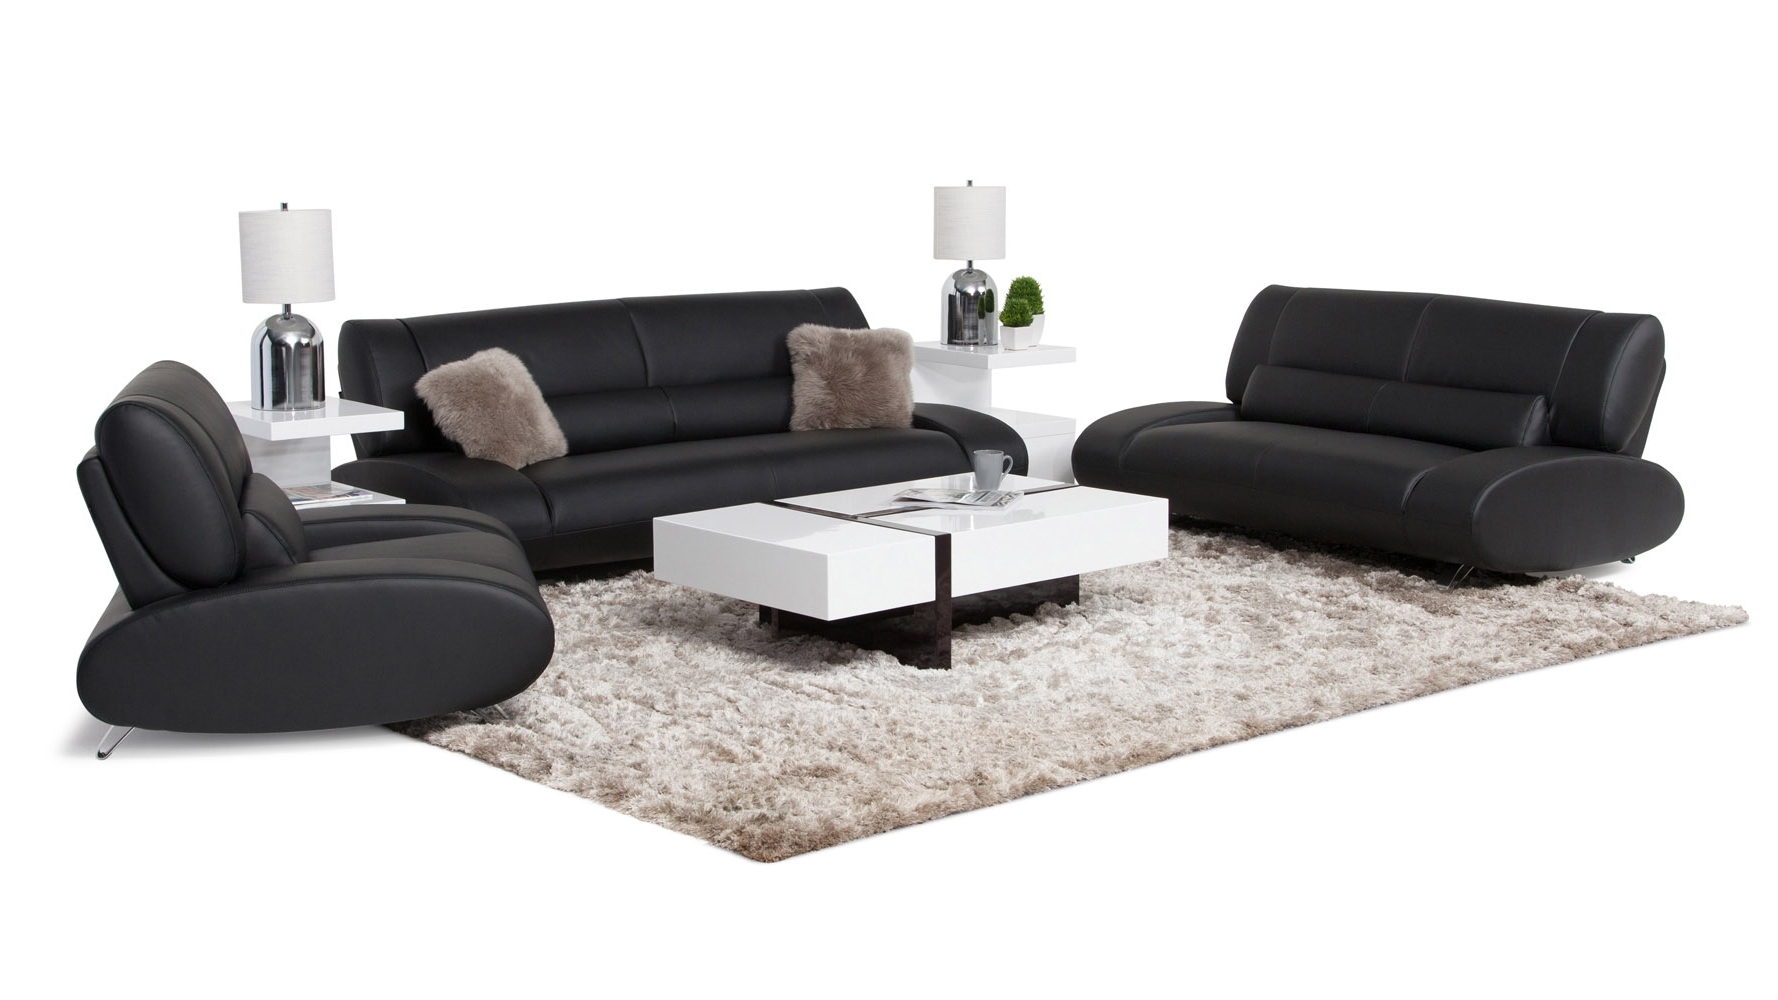 Zuri Furniture Within Aspen Leather Sofas (View 20 of 20)